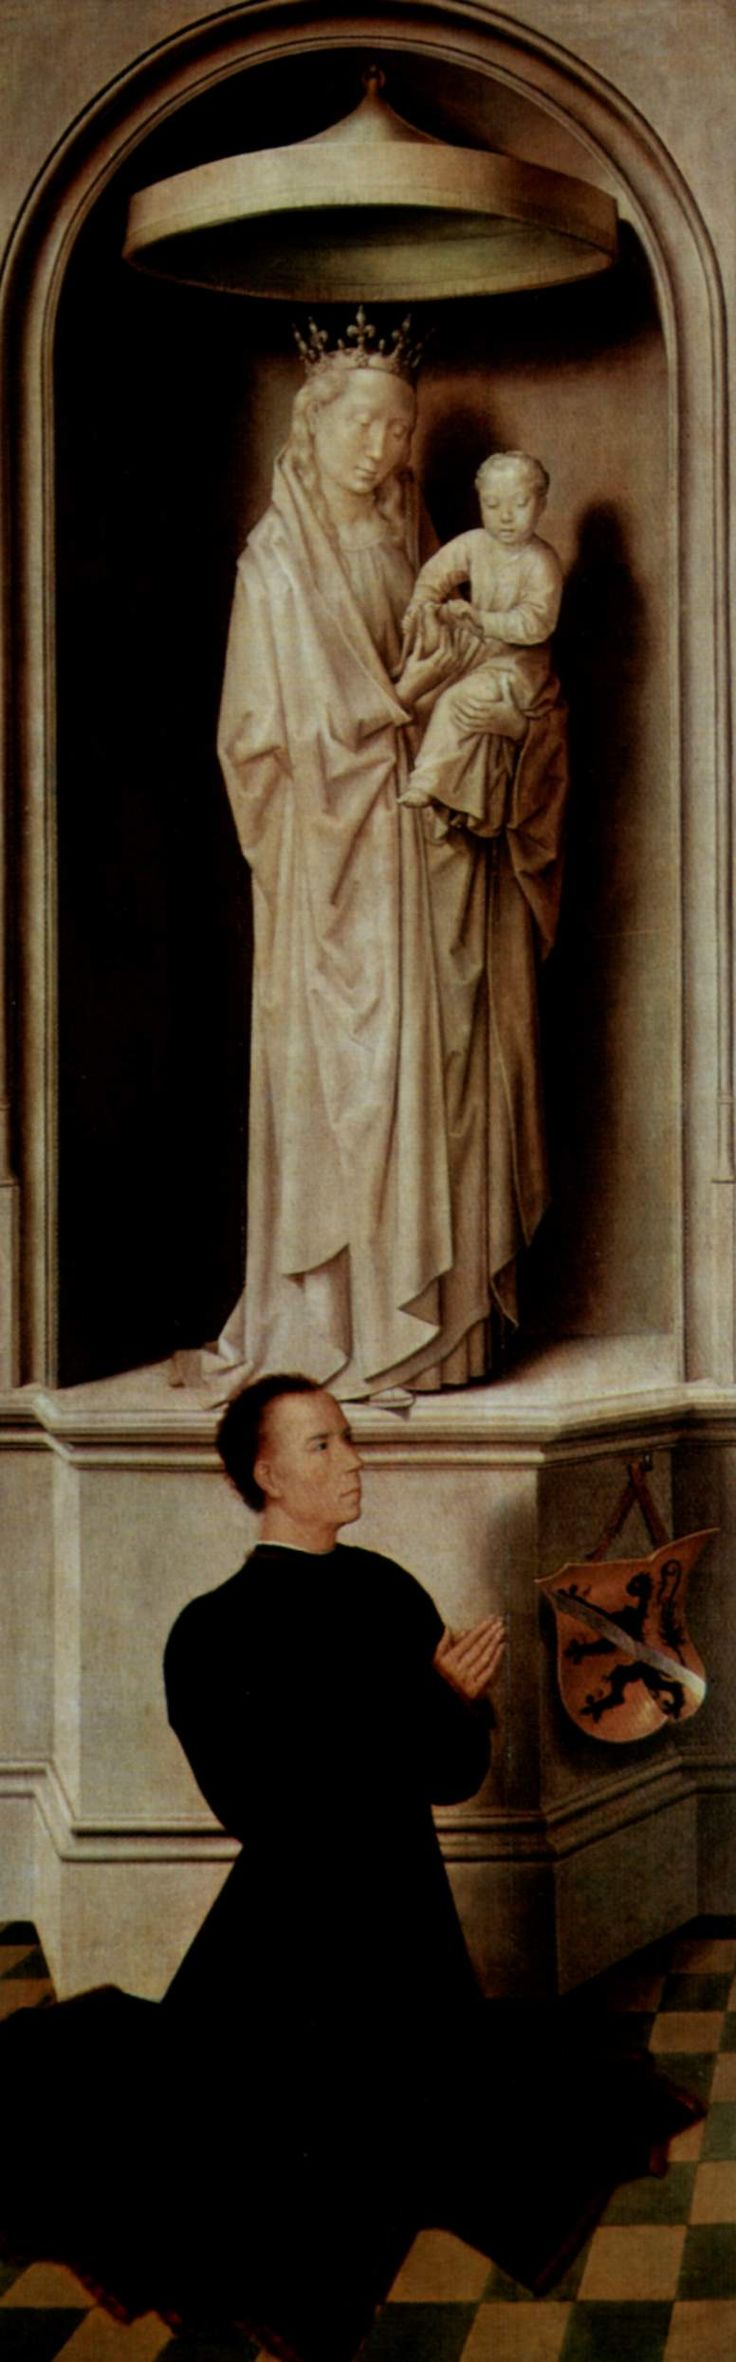 File:Hans Memling 016.jpg: C Hans Meml, 1470S Artexperiencenyc, File Hans Meml, Angel, Paintings Hans Meml, Renaissance Art, Meml 14301440, Di Jacopo, Madonna And Child